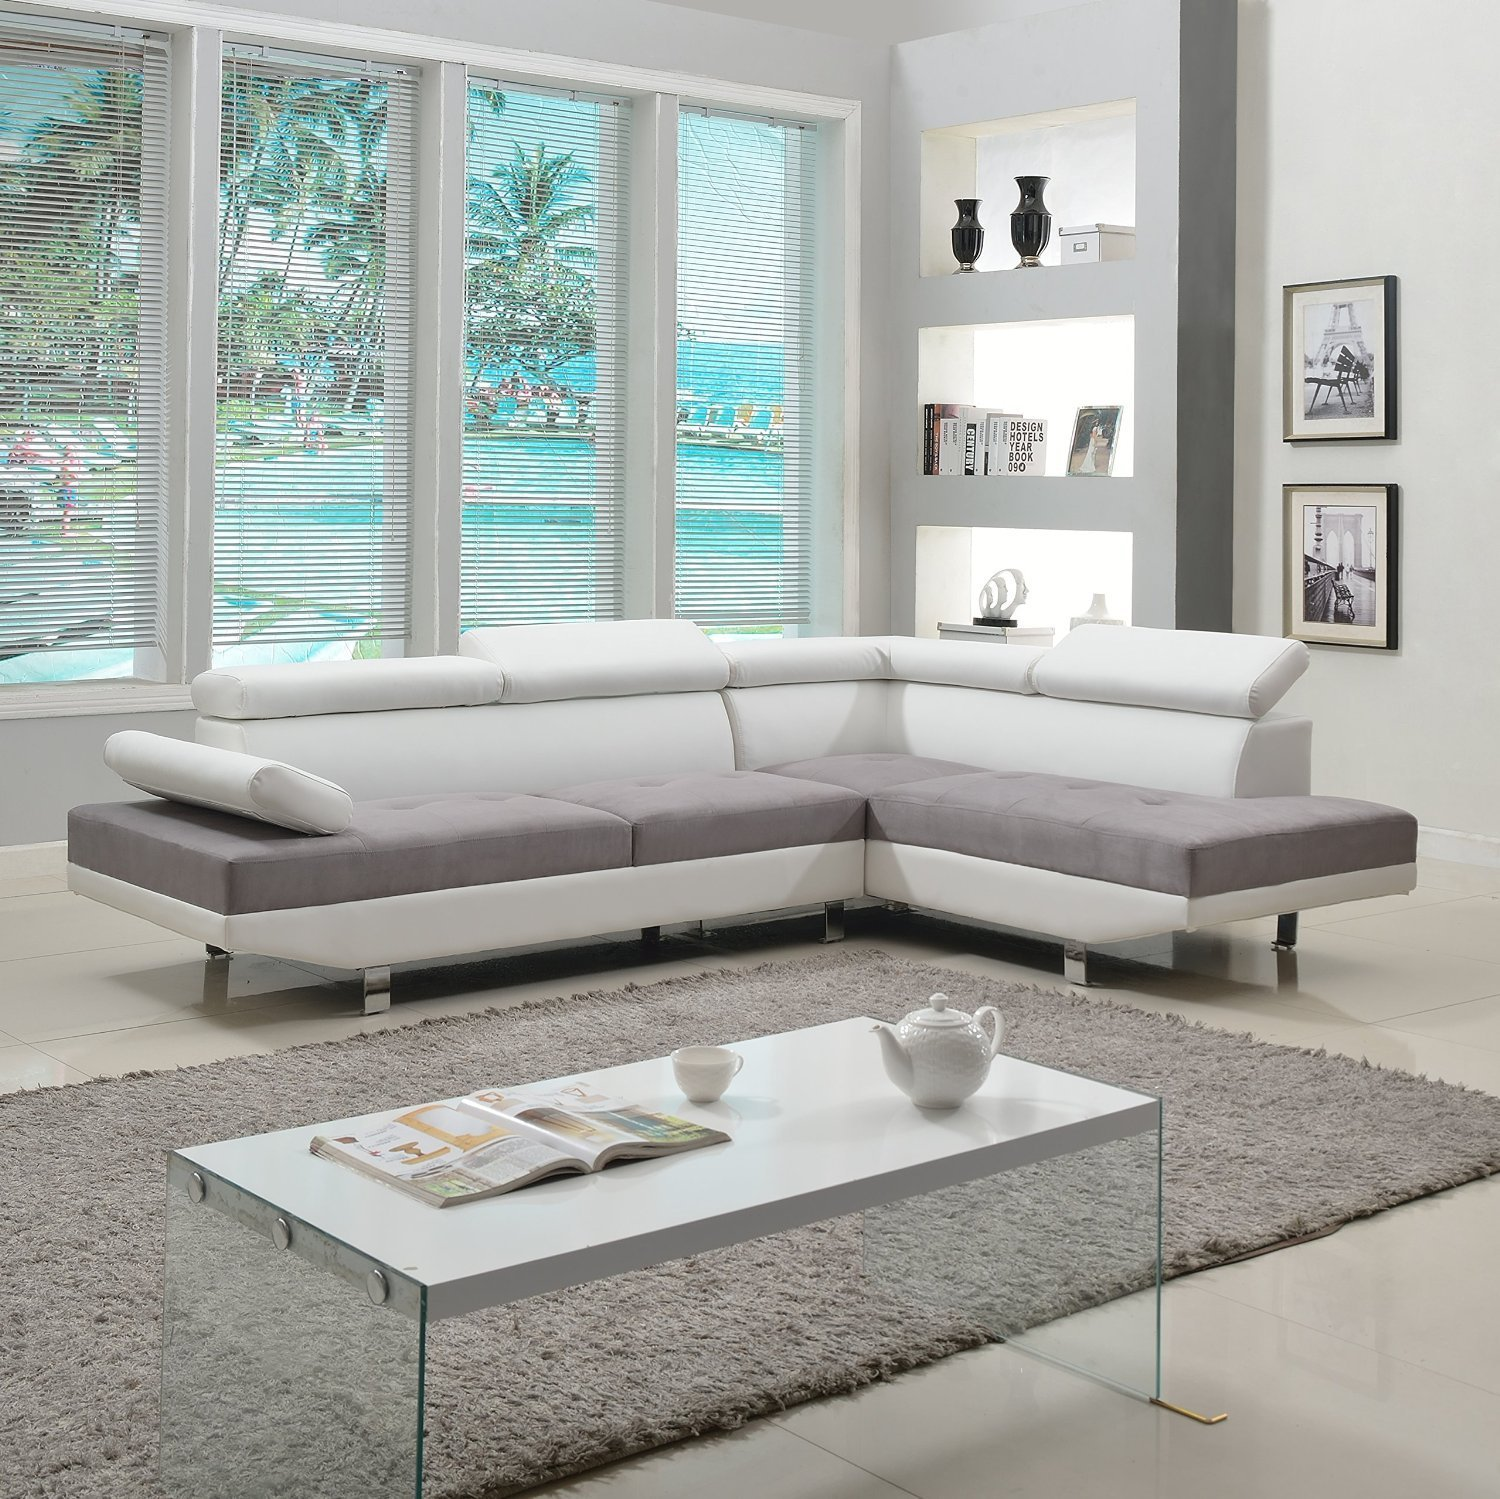 Modern living room furniture review find the best one for New living room furniture